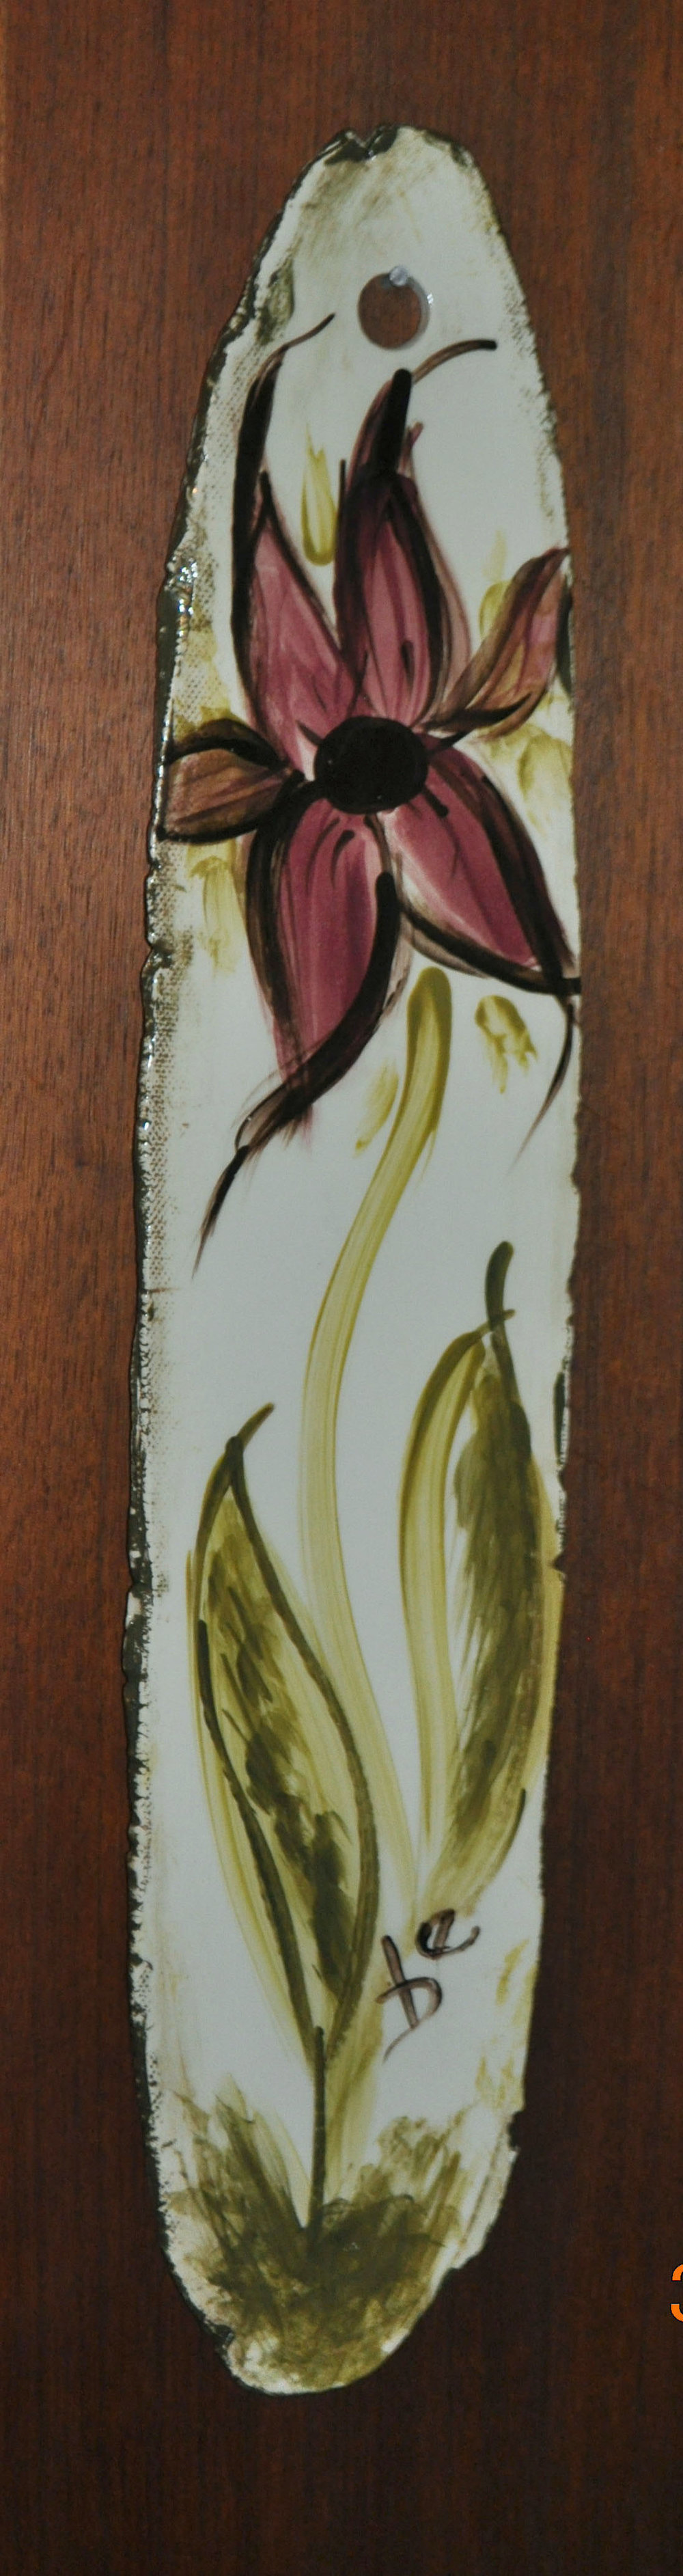 HAND PAINTED BOTANICAL WALL HANGINGS.